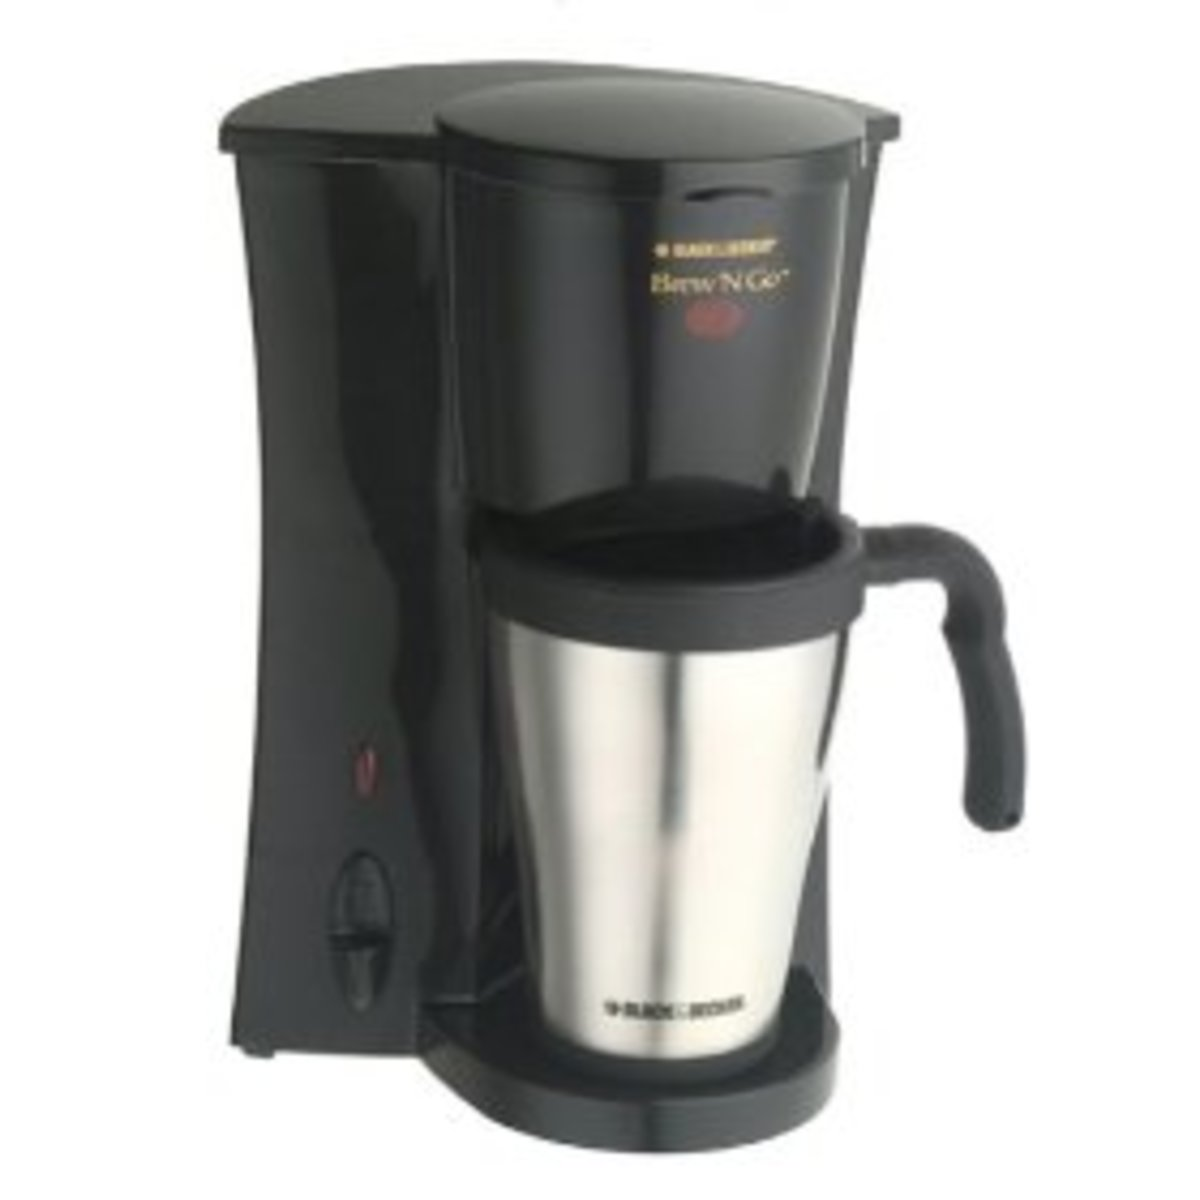 Best Coffee Maker Small Space : What s the Best Small Coffee Maker?